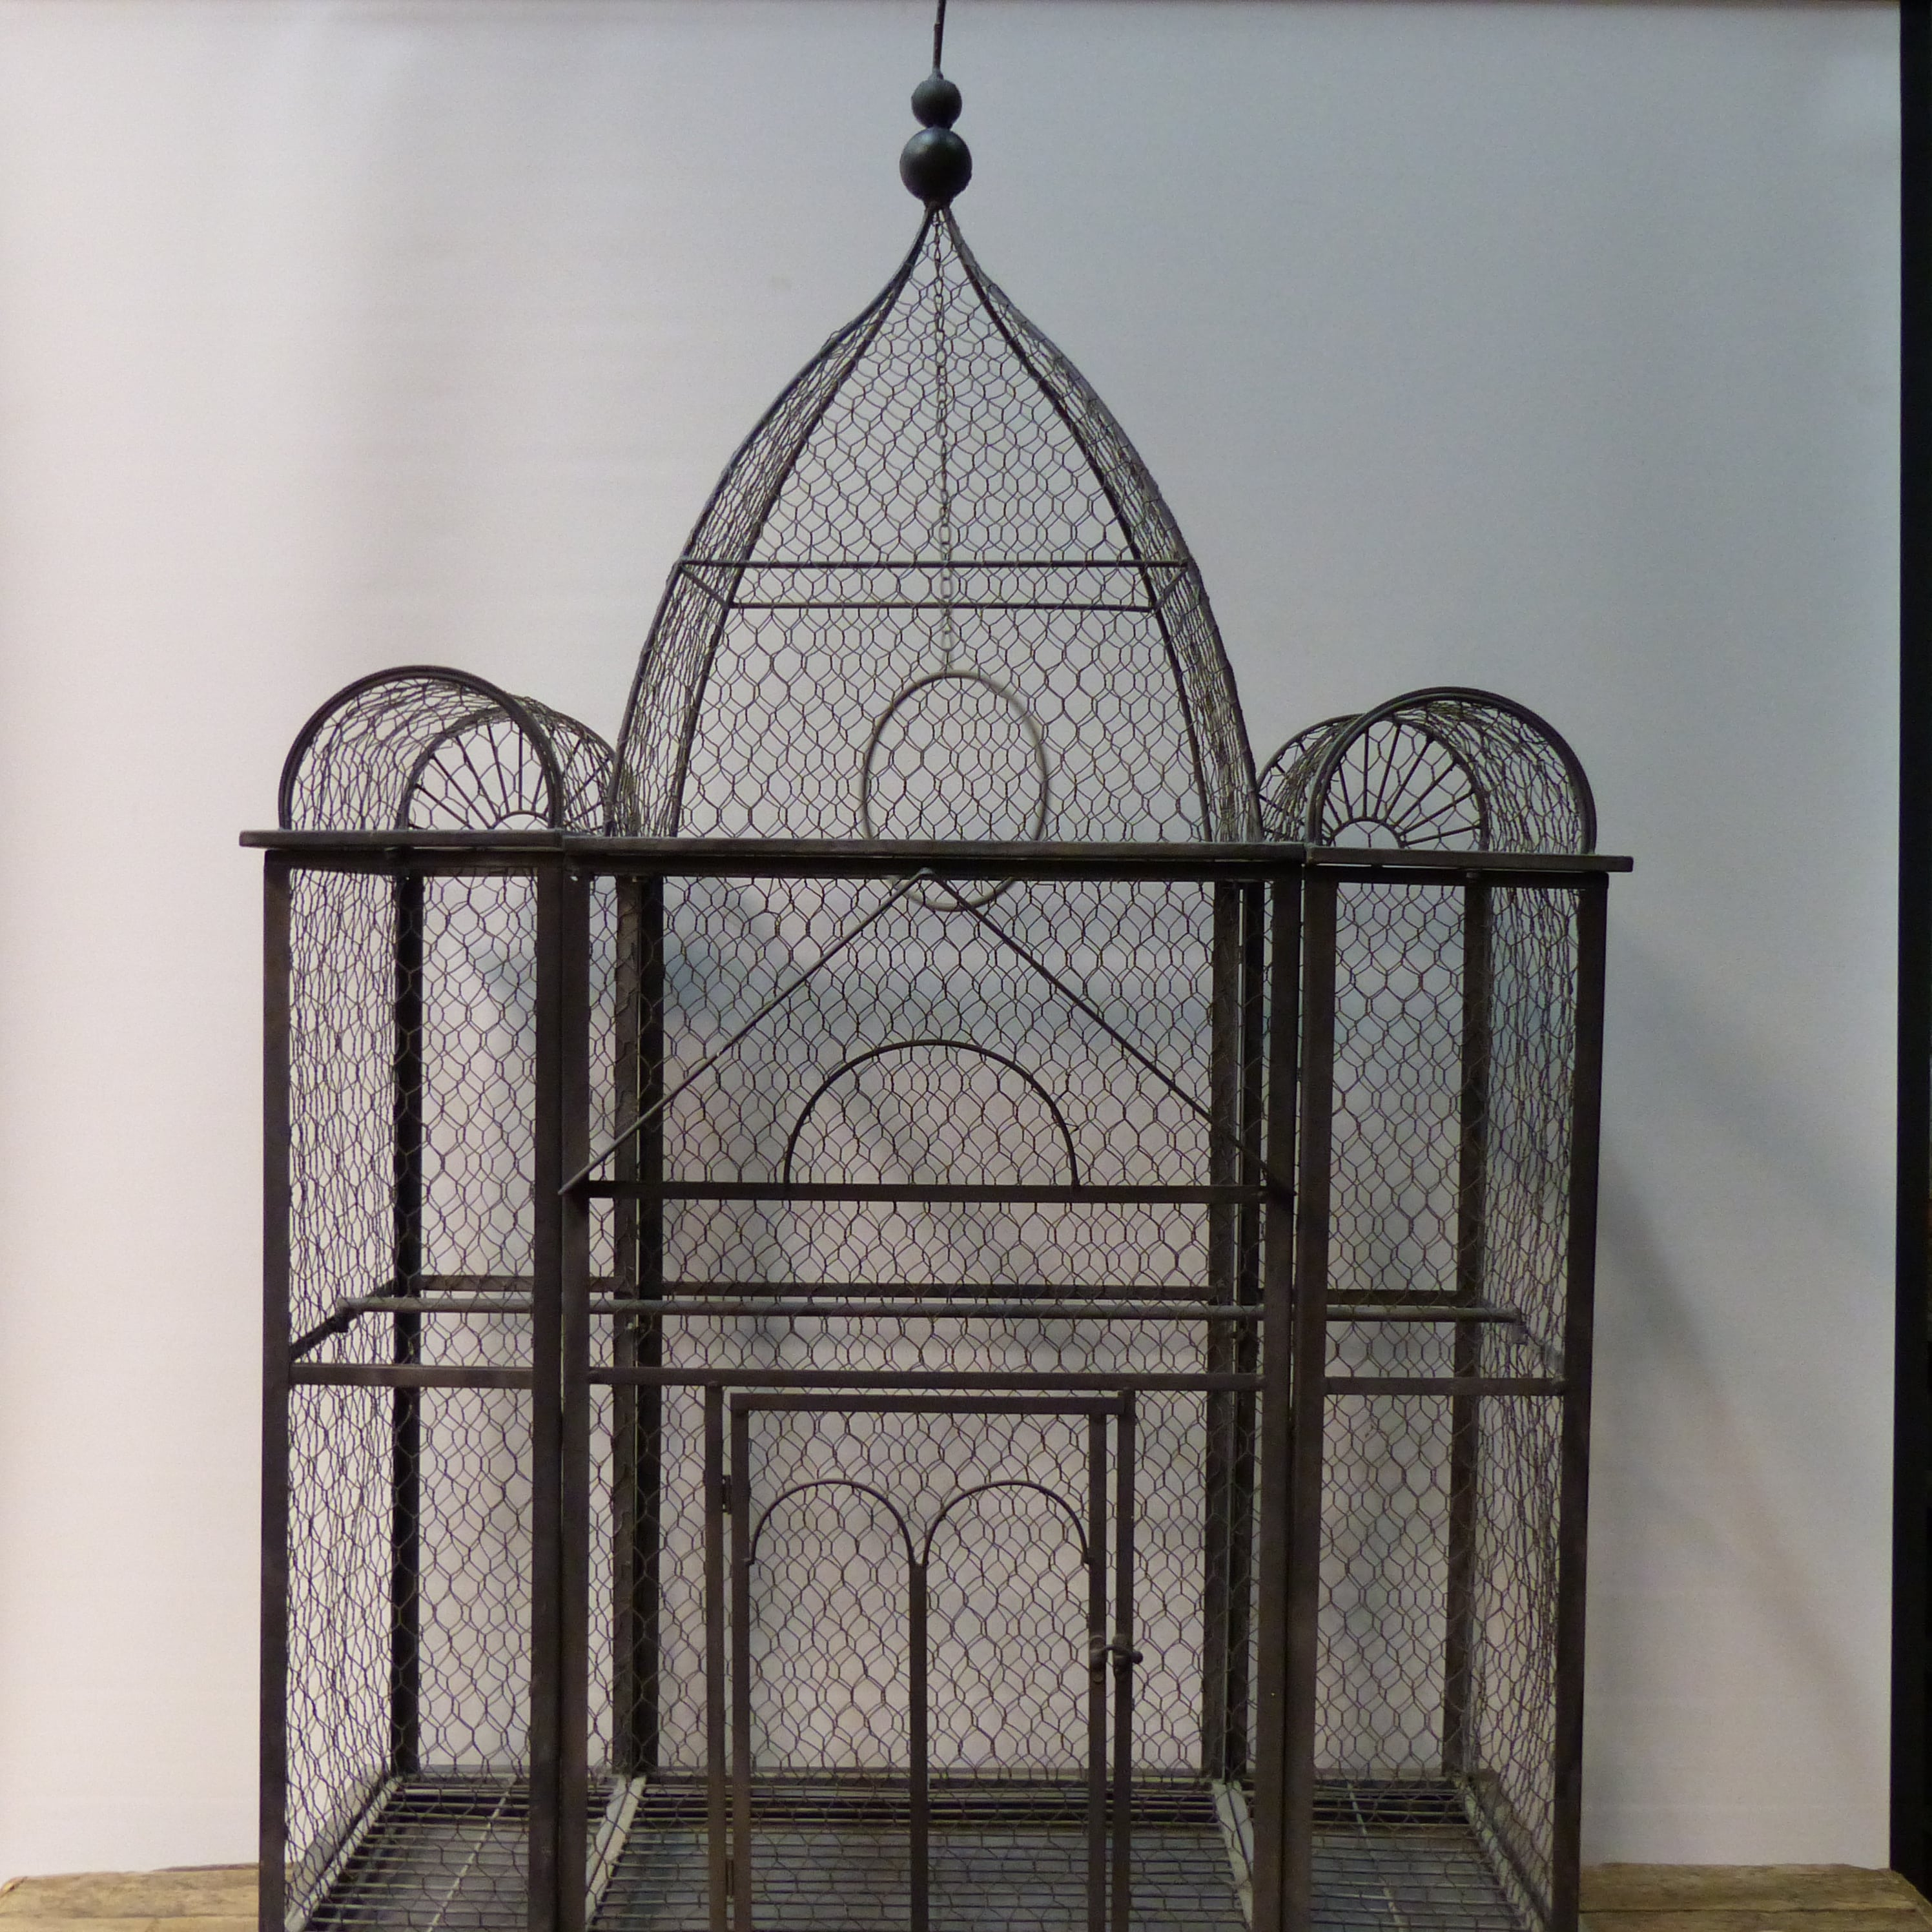 grande cage oiseaux grillag e lignedebrocante brocante en ligne chine pour vous meubles. Black Bedroom Furniture Sets. Home Design Ideas